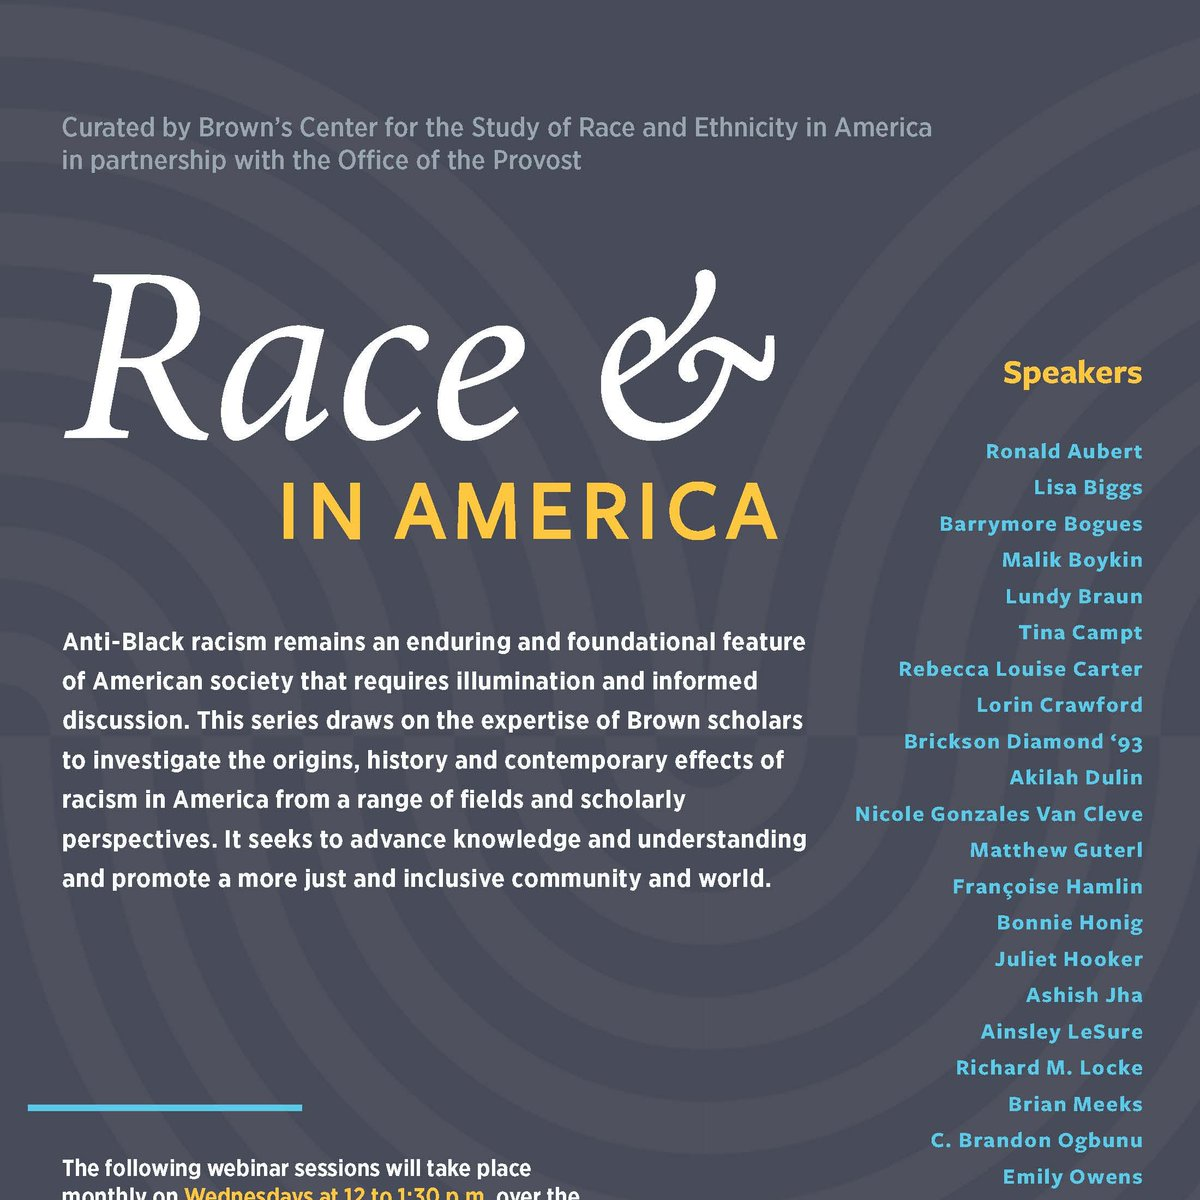 """Check out the upcoming webinar series, """"Race &,"""" in America curated by Brown's  Center for the Study of Race and Ethnicity in America (@RaceEthnicity) in partnership with the Office of the Provost.  Learn more:  https://t.co/j5i2tSKjuG https://t.co/2o26Ad8XWm"""